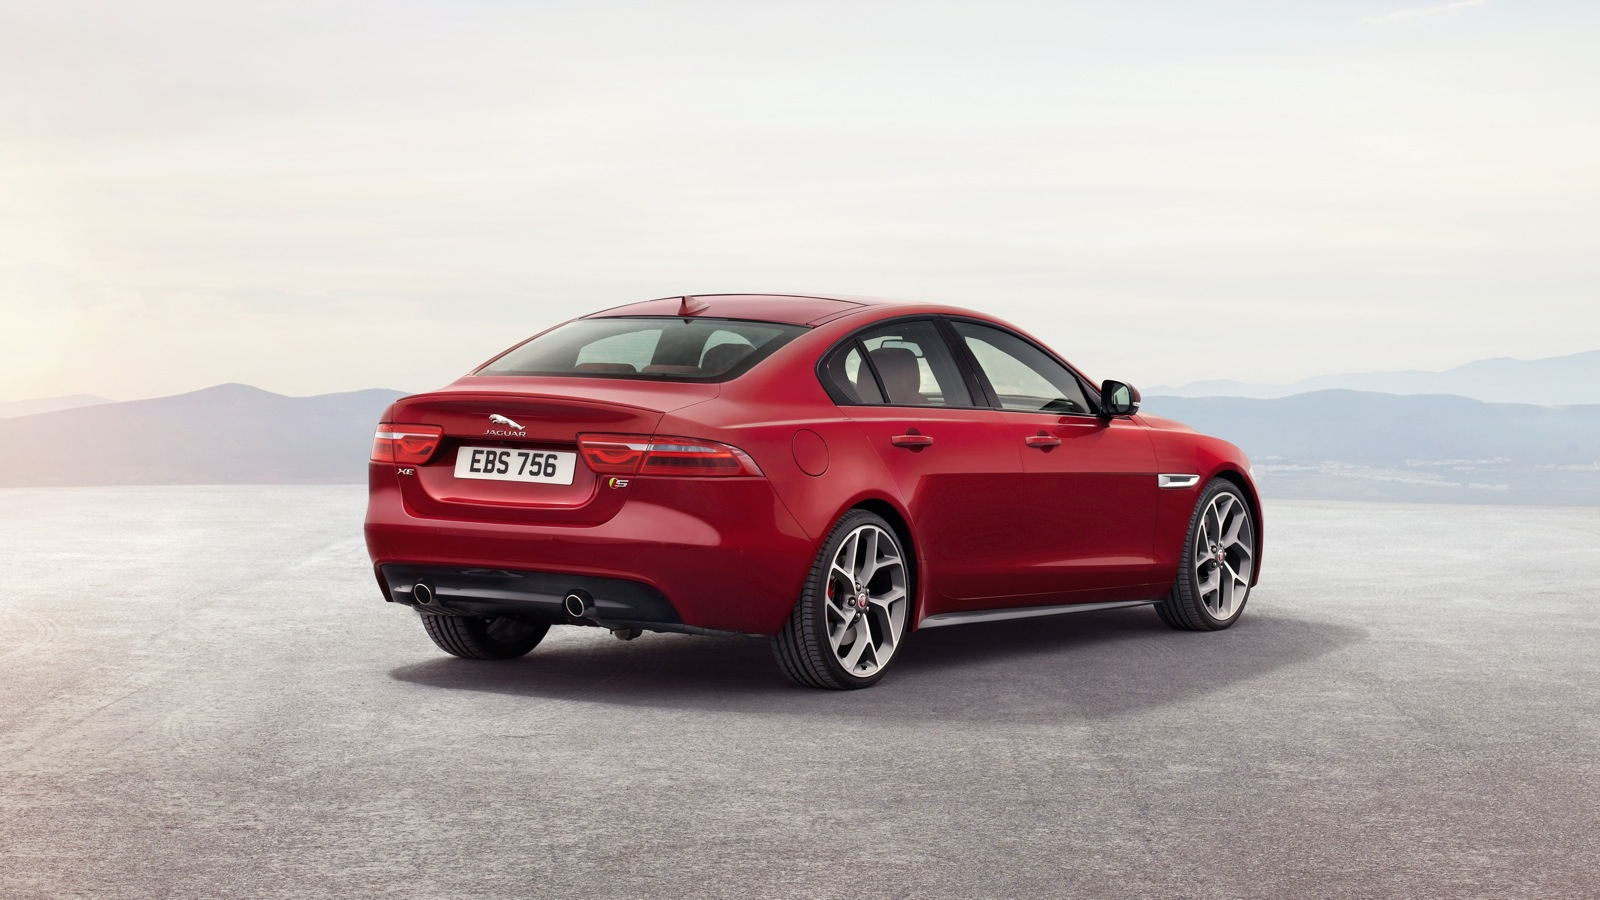 2015 jaguar xe revealed photos 1 of 25. Black Bedroom Furniture Sets. Home Design Ideas